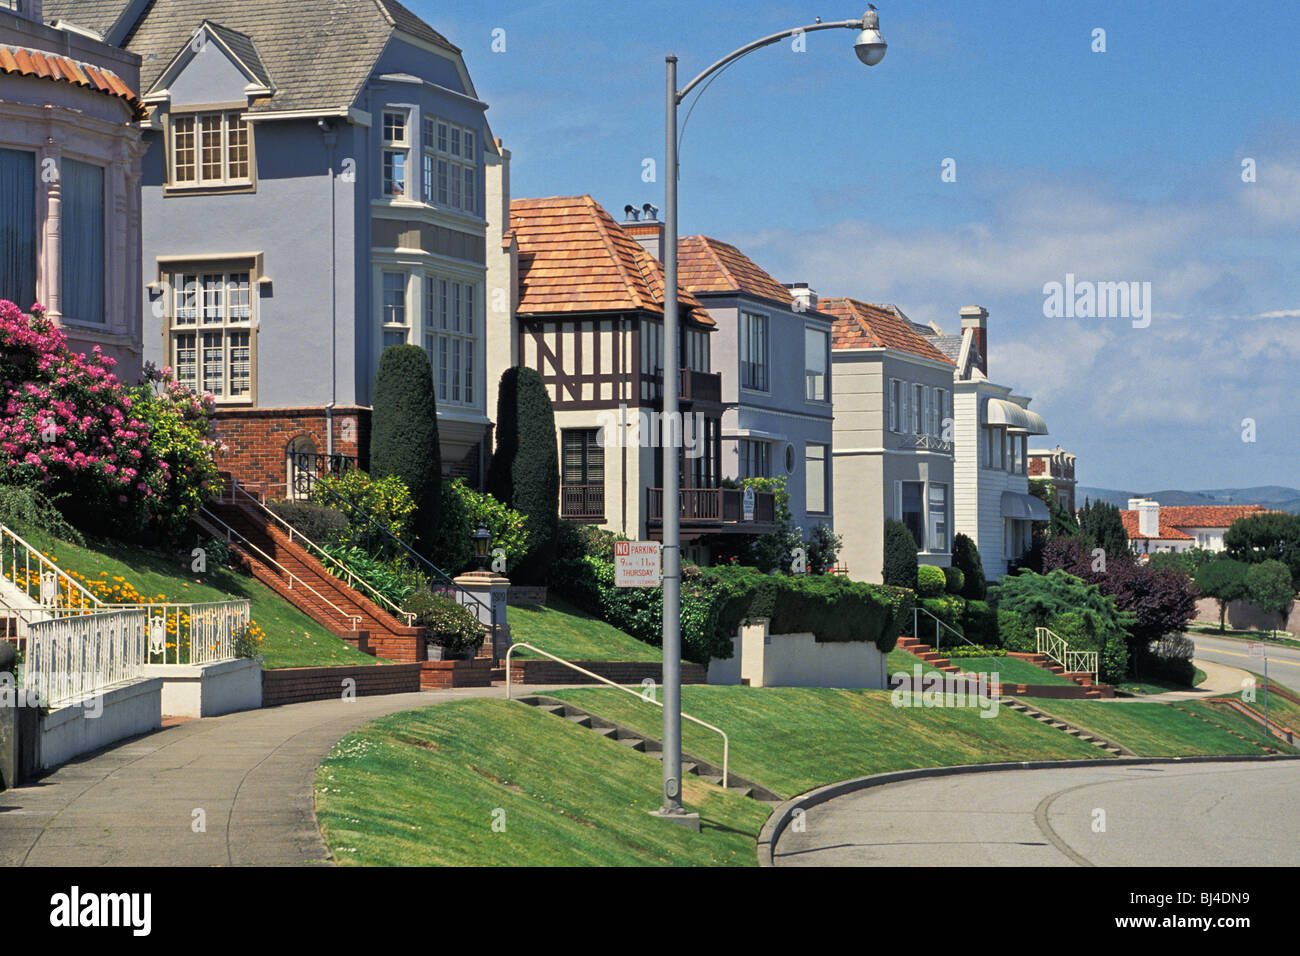 seacliff residential area san francisco california stock photo 28372773 alamy. Black Bedroom Furniture Sets. Home Design Ideas